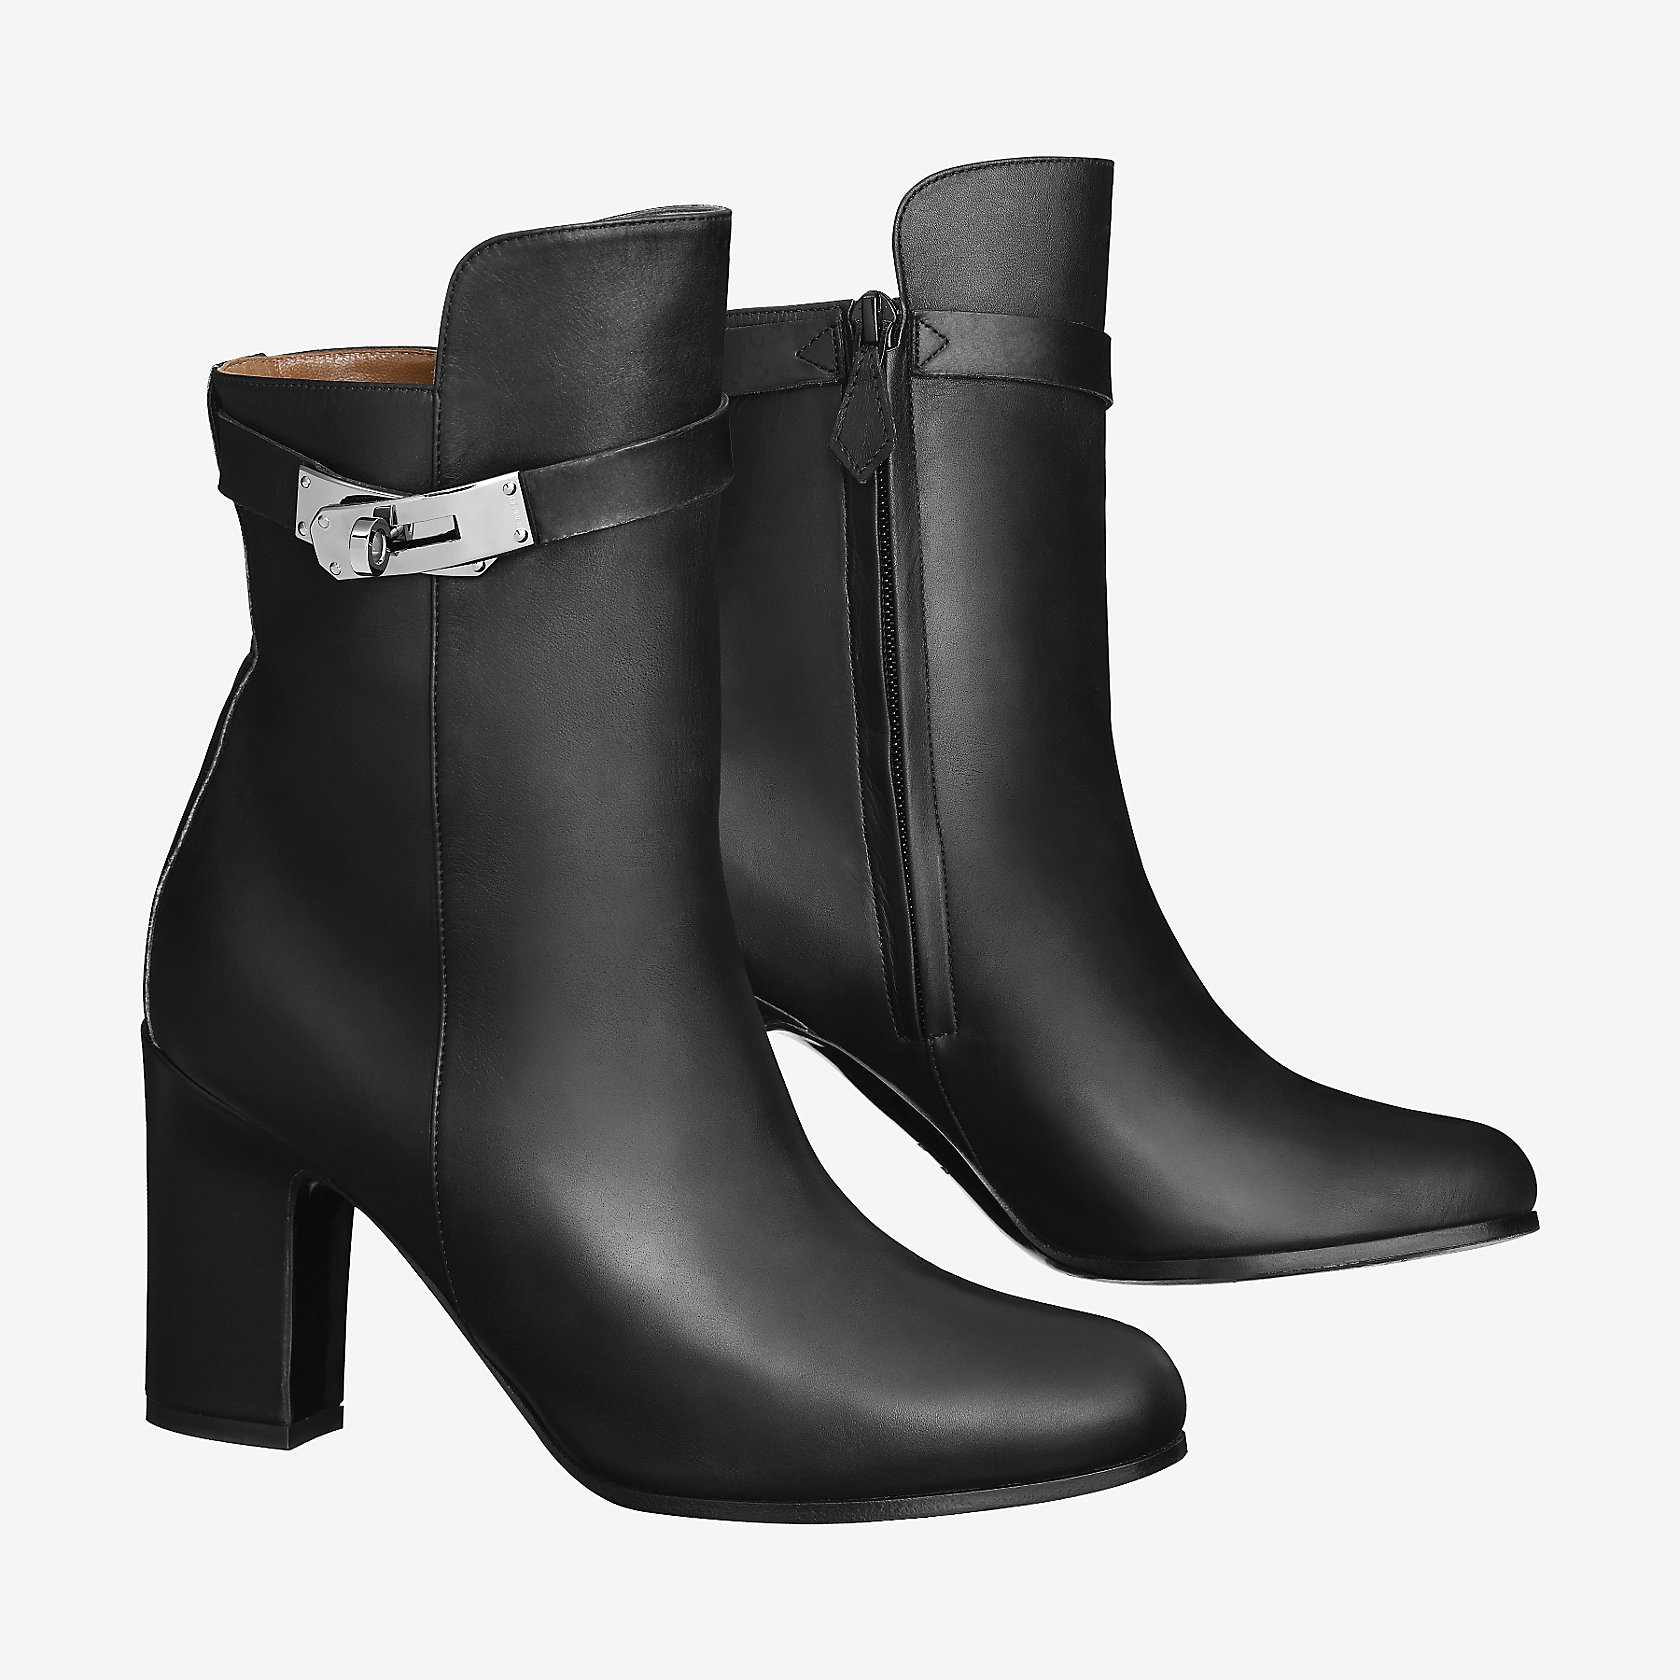 be5acd0946c4 Joueuse ankle boot   Hermès